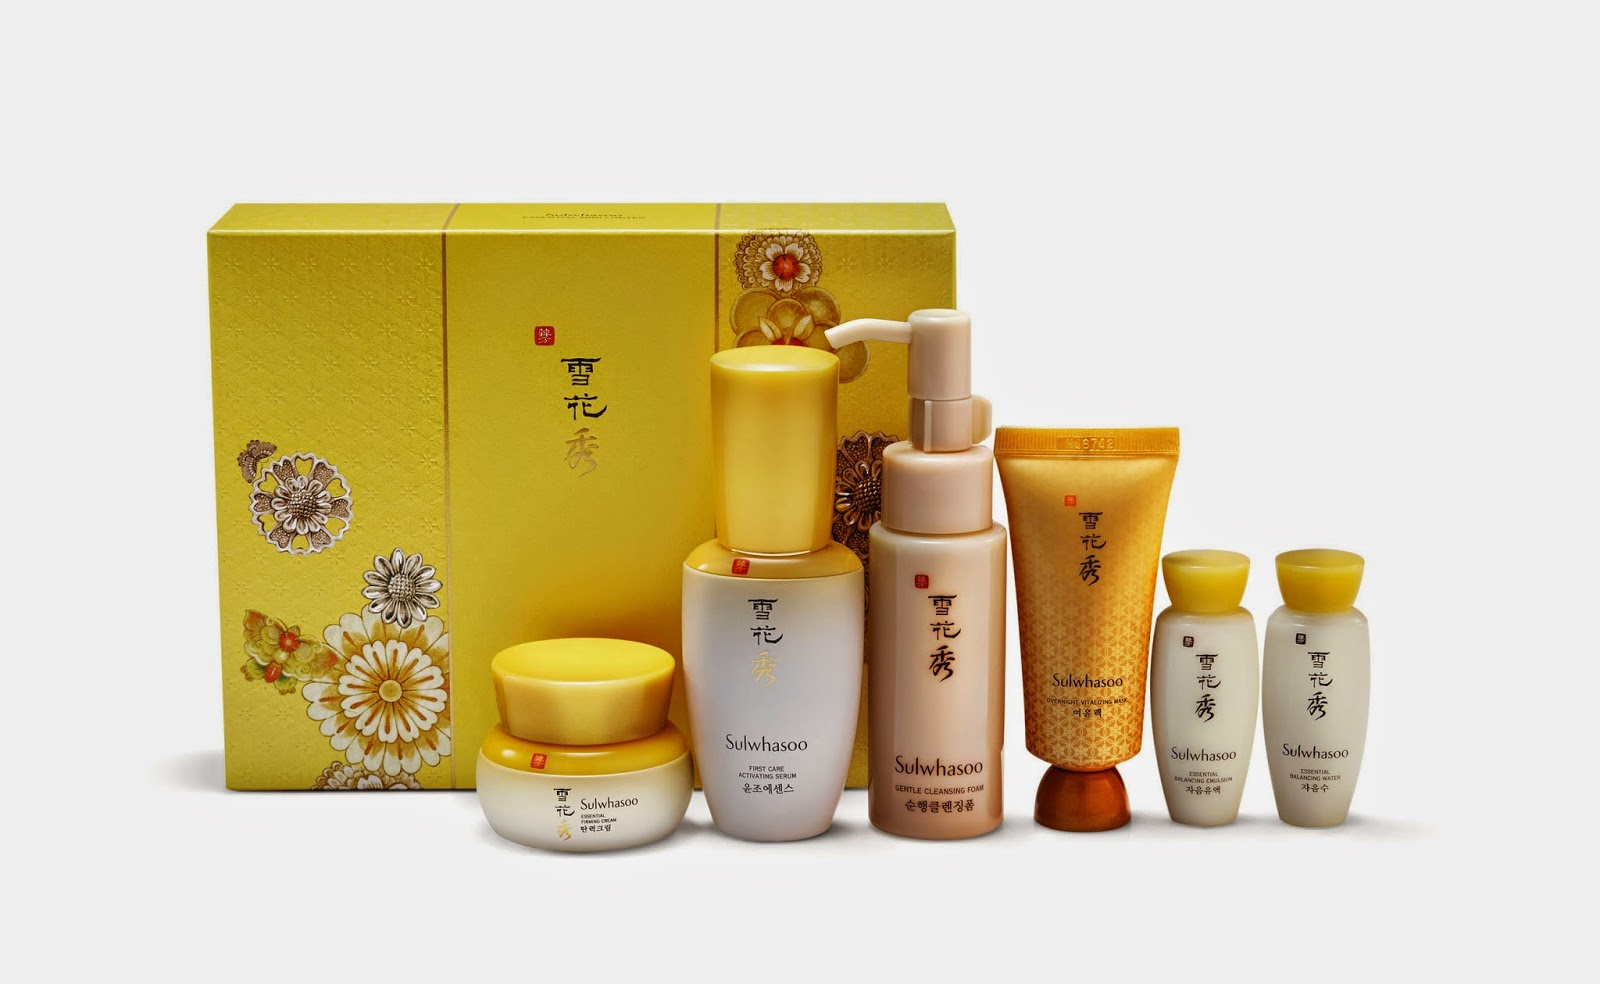 Beauty And Lifestyle Blogger News Christmas 2014 Sulwhasoo Time Treasure Renovating Cream Ex 8ml Has Made It Possible With This Starter Kit That Offer Just What The Skin Needs To Be Radiant